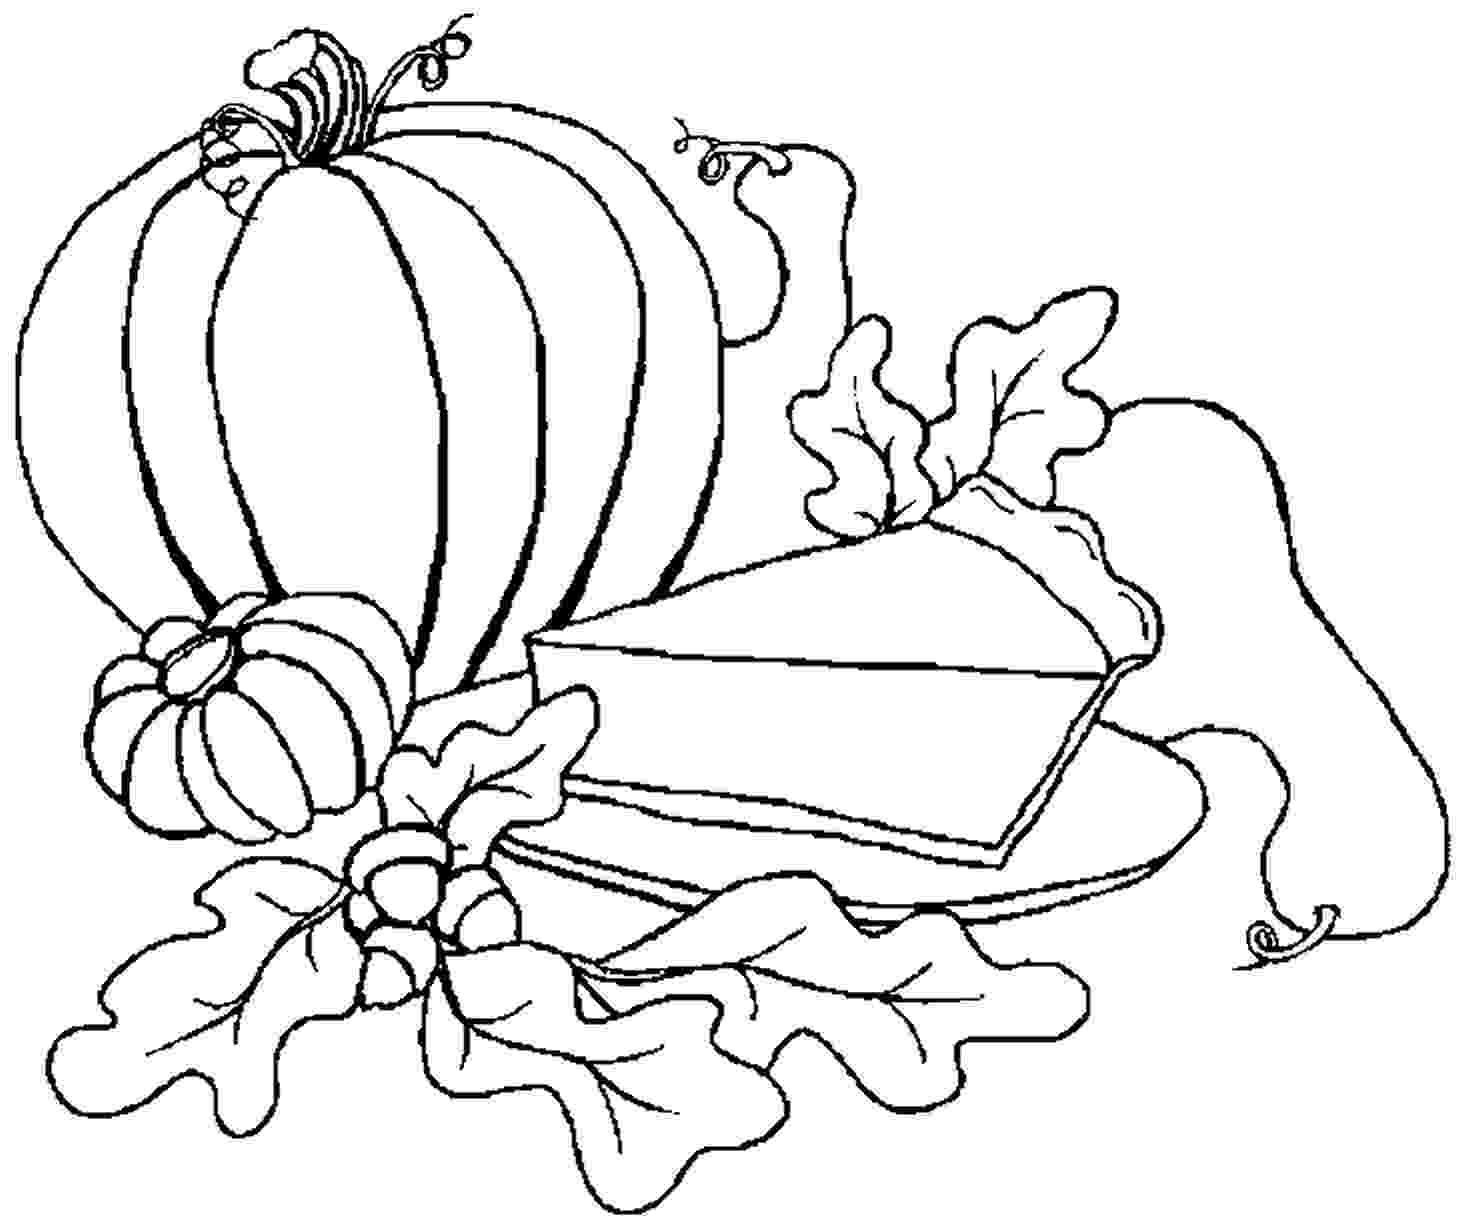 pumpkin pictures to colour cartoon halloween pumpkin coloring page free printable to pictures colour pumpkin